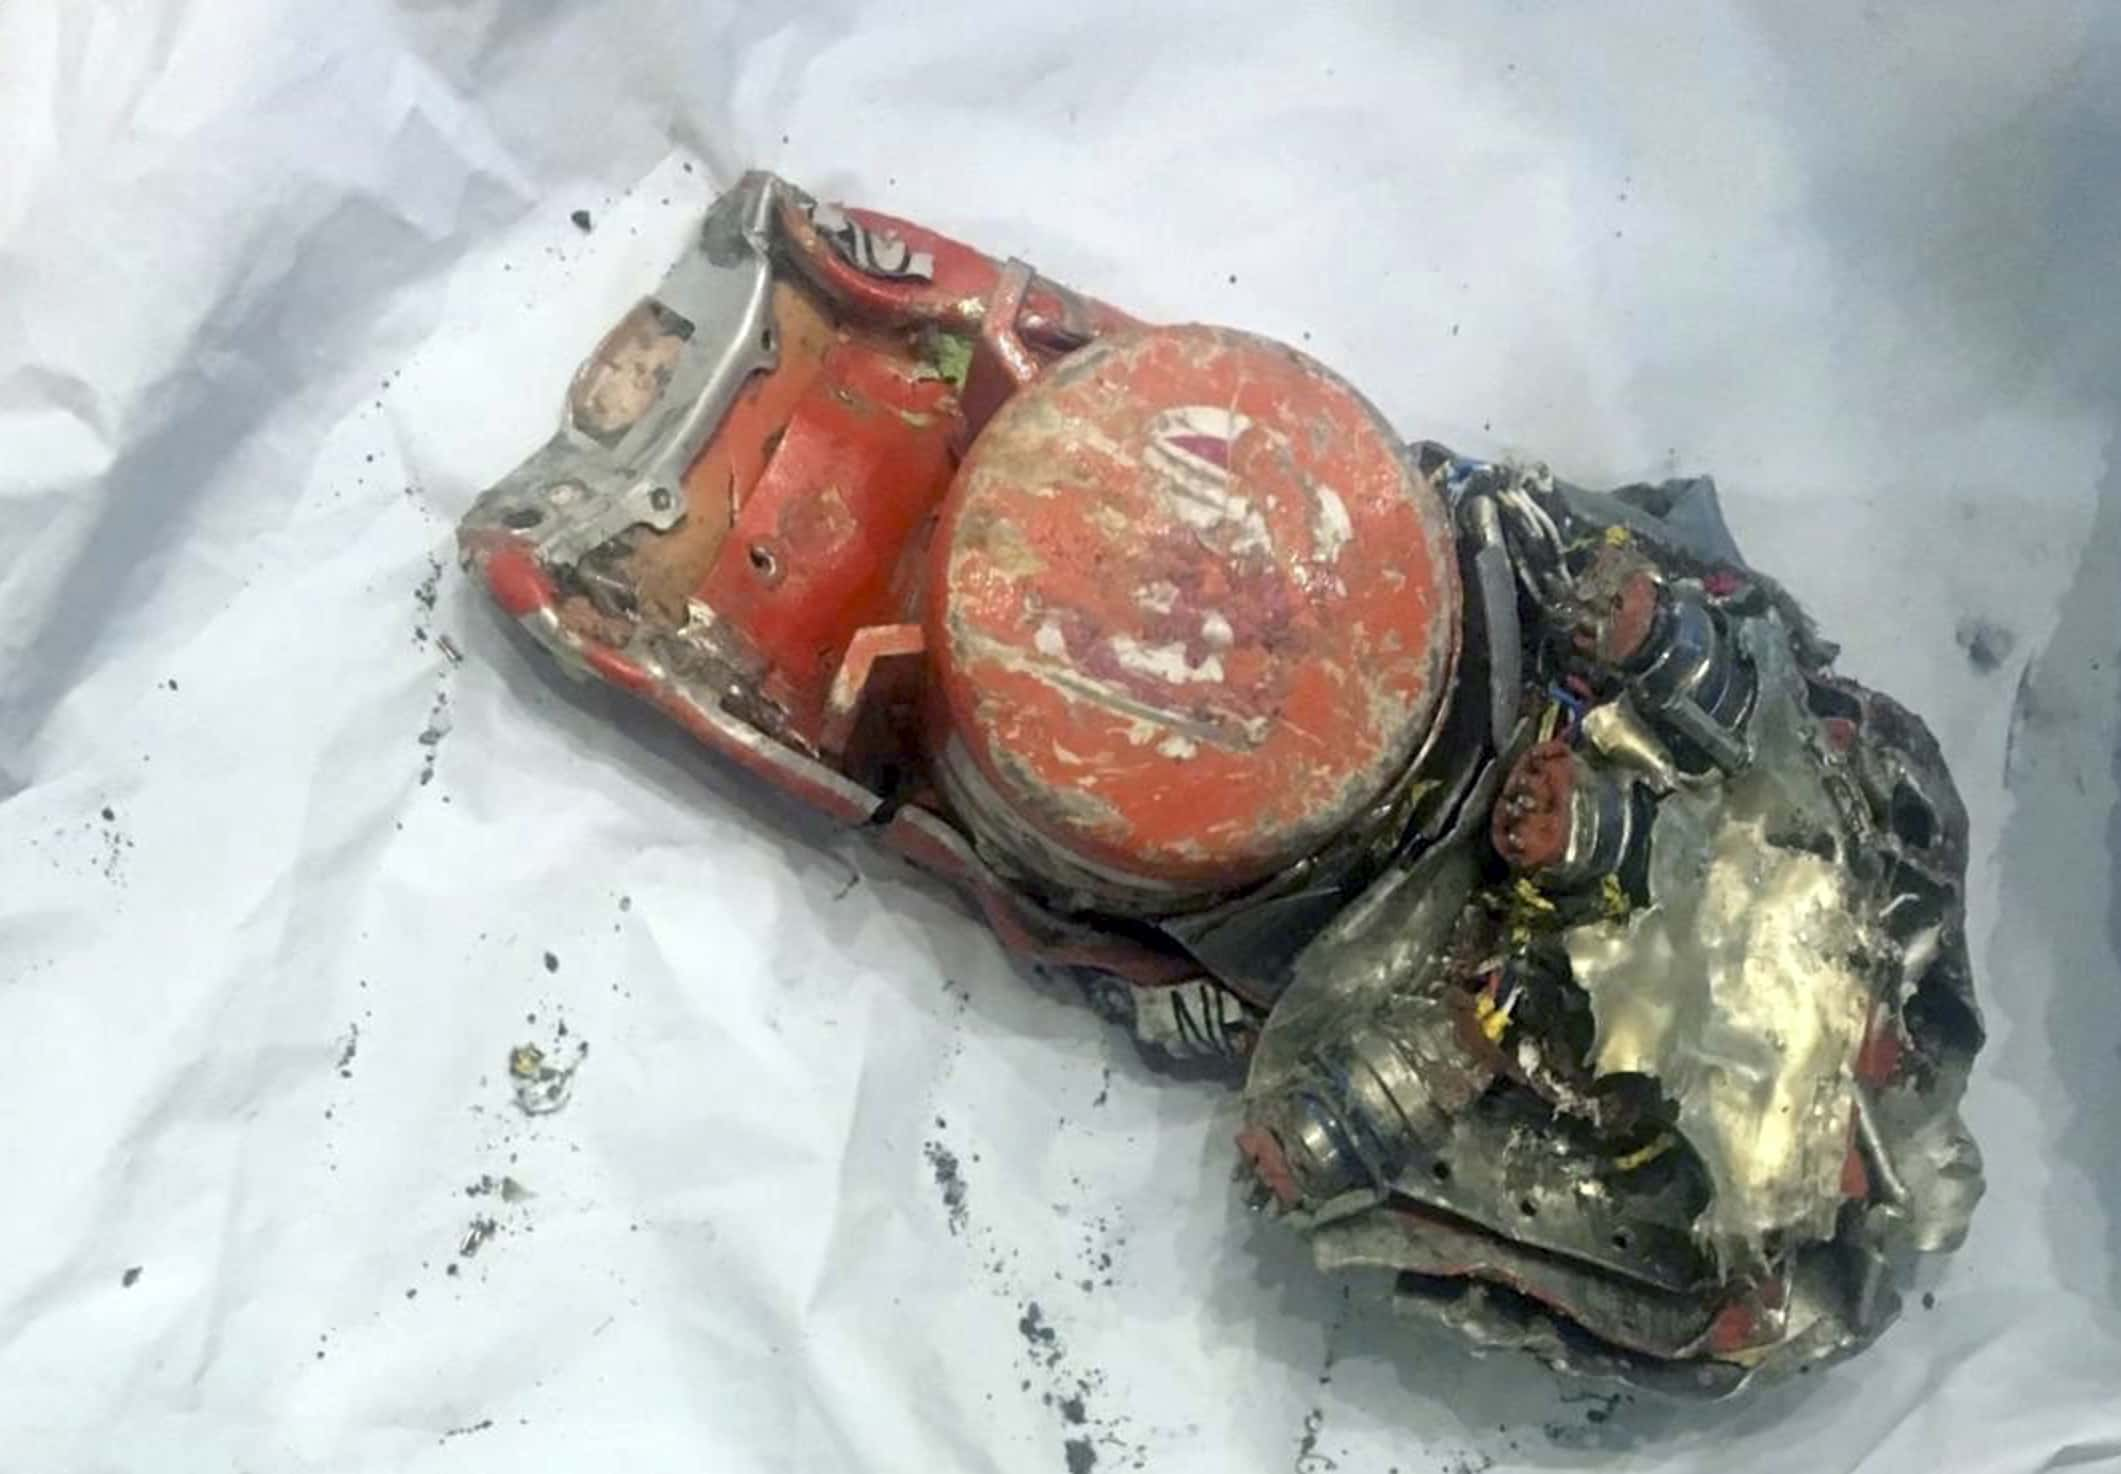 Photo of data recorder from the crashed Ethiopian Airlines jet